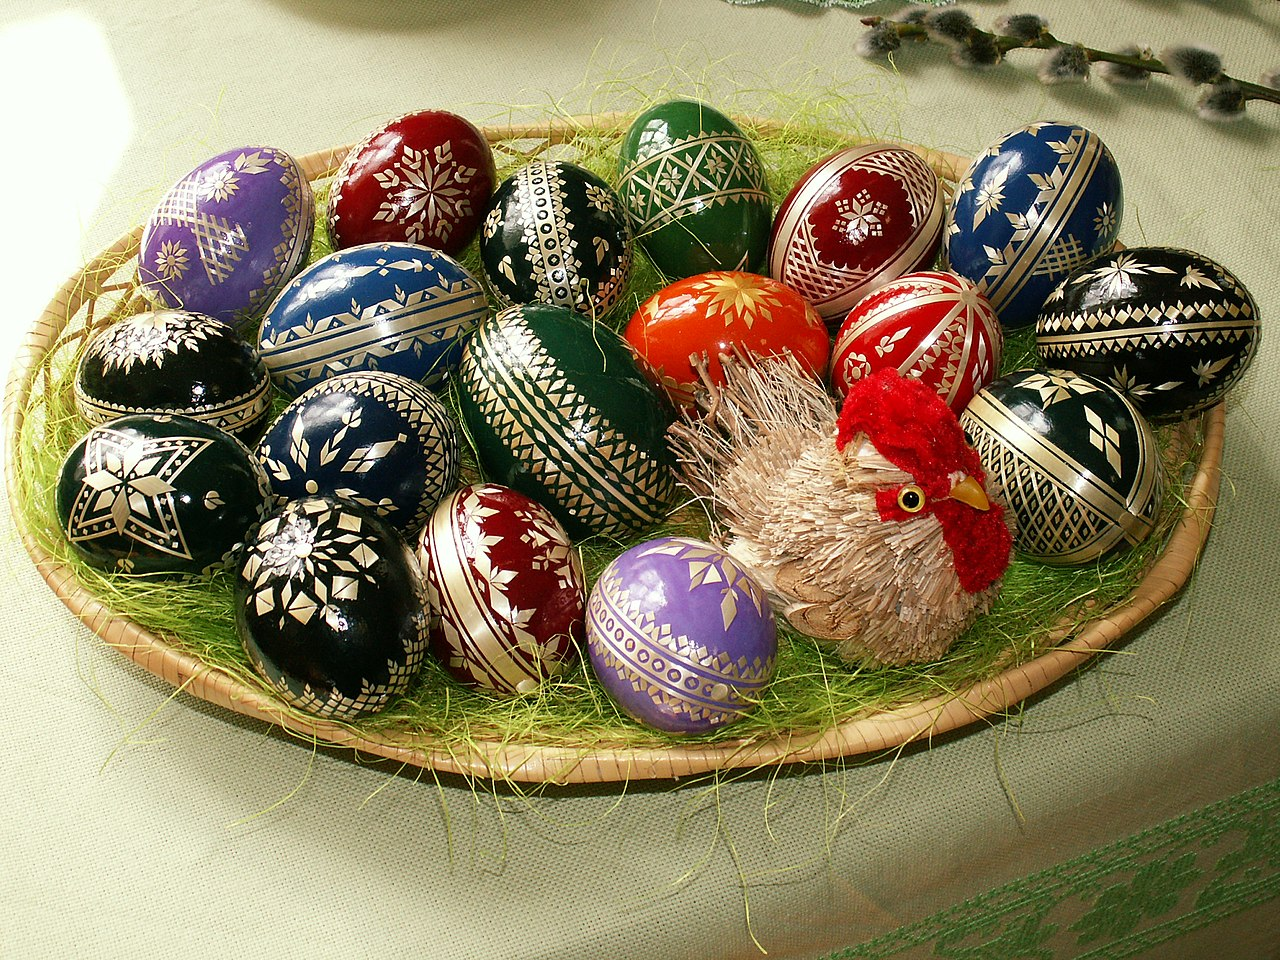 1280px-Easter_eggs_-_straw_decoration.jp